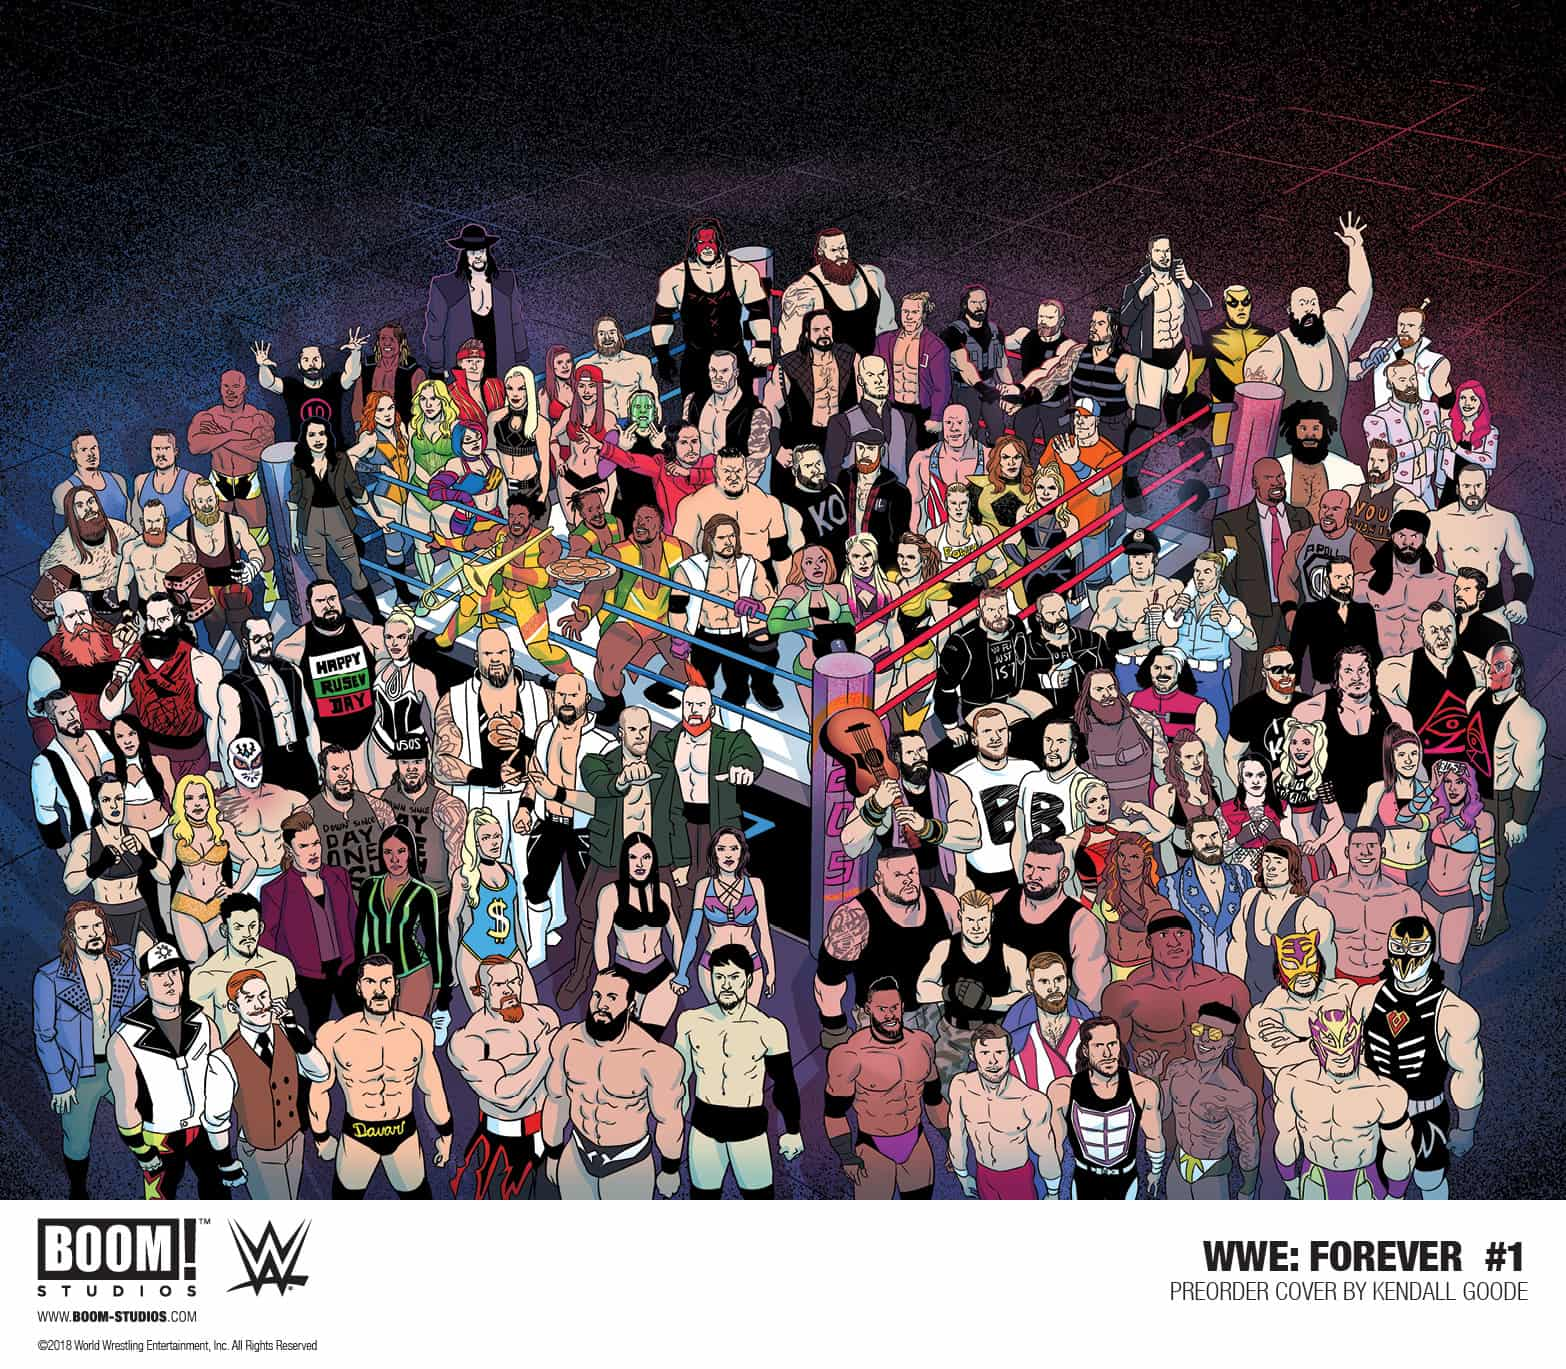 wwe_forever_001_preorder_promo